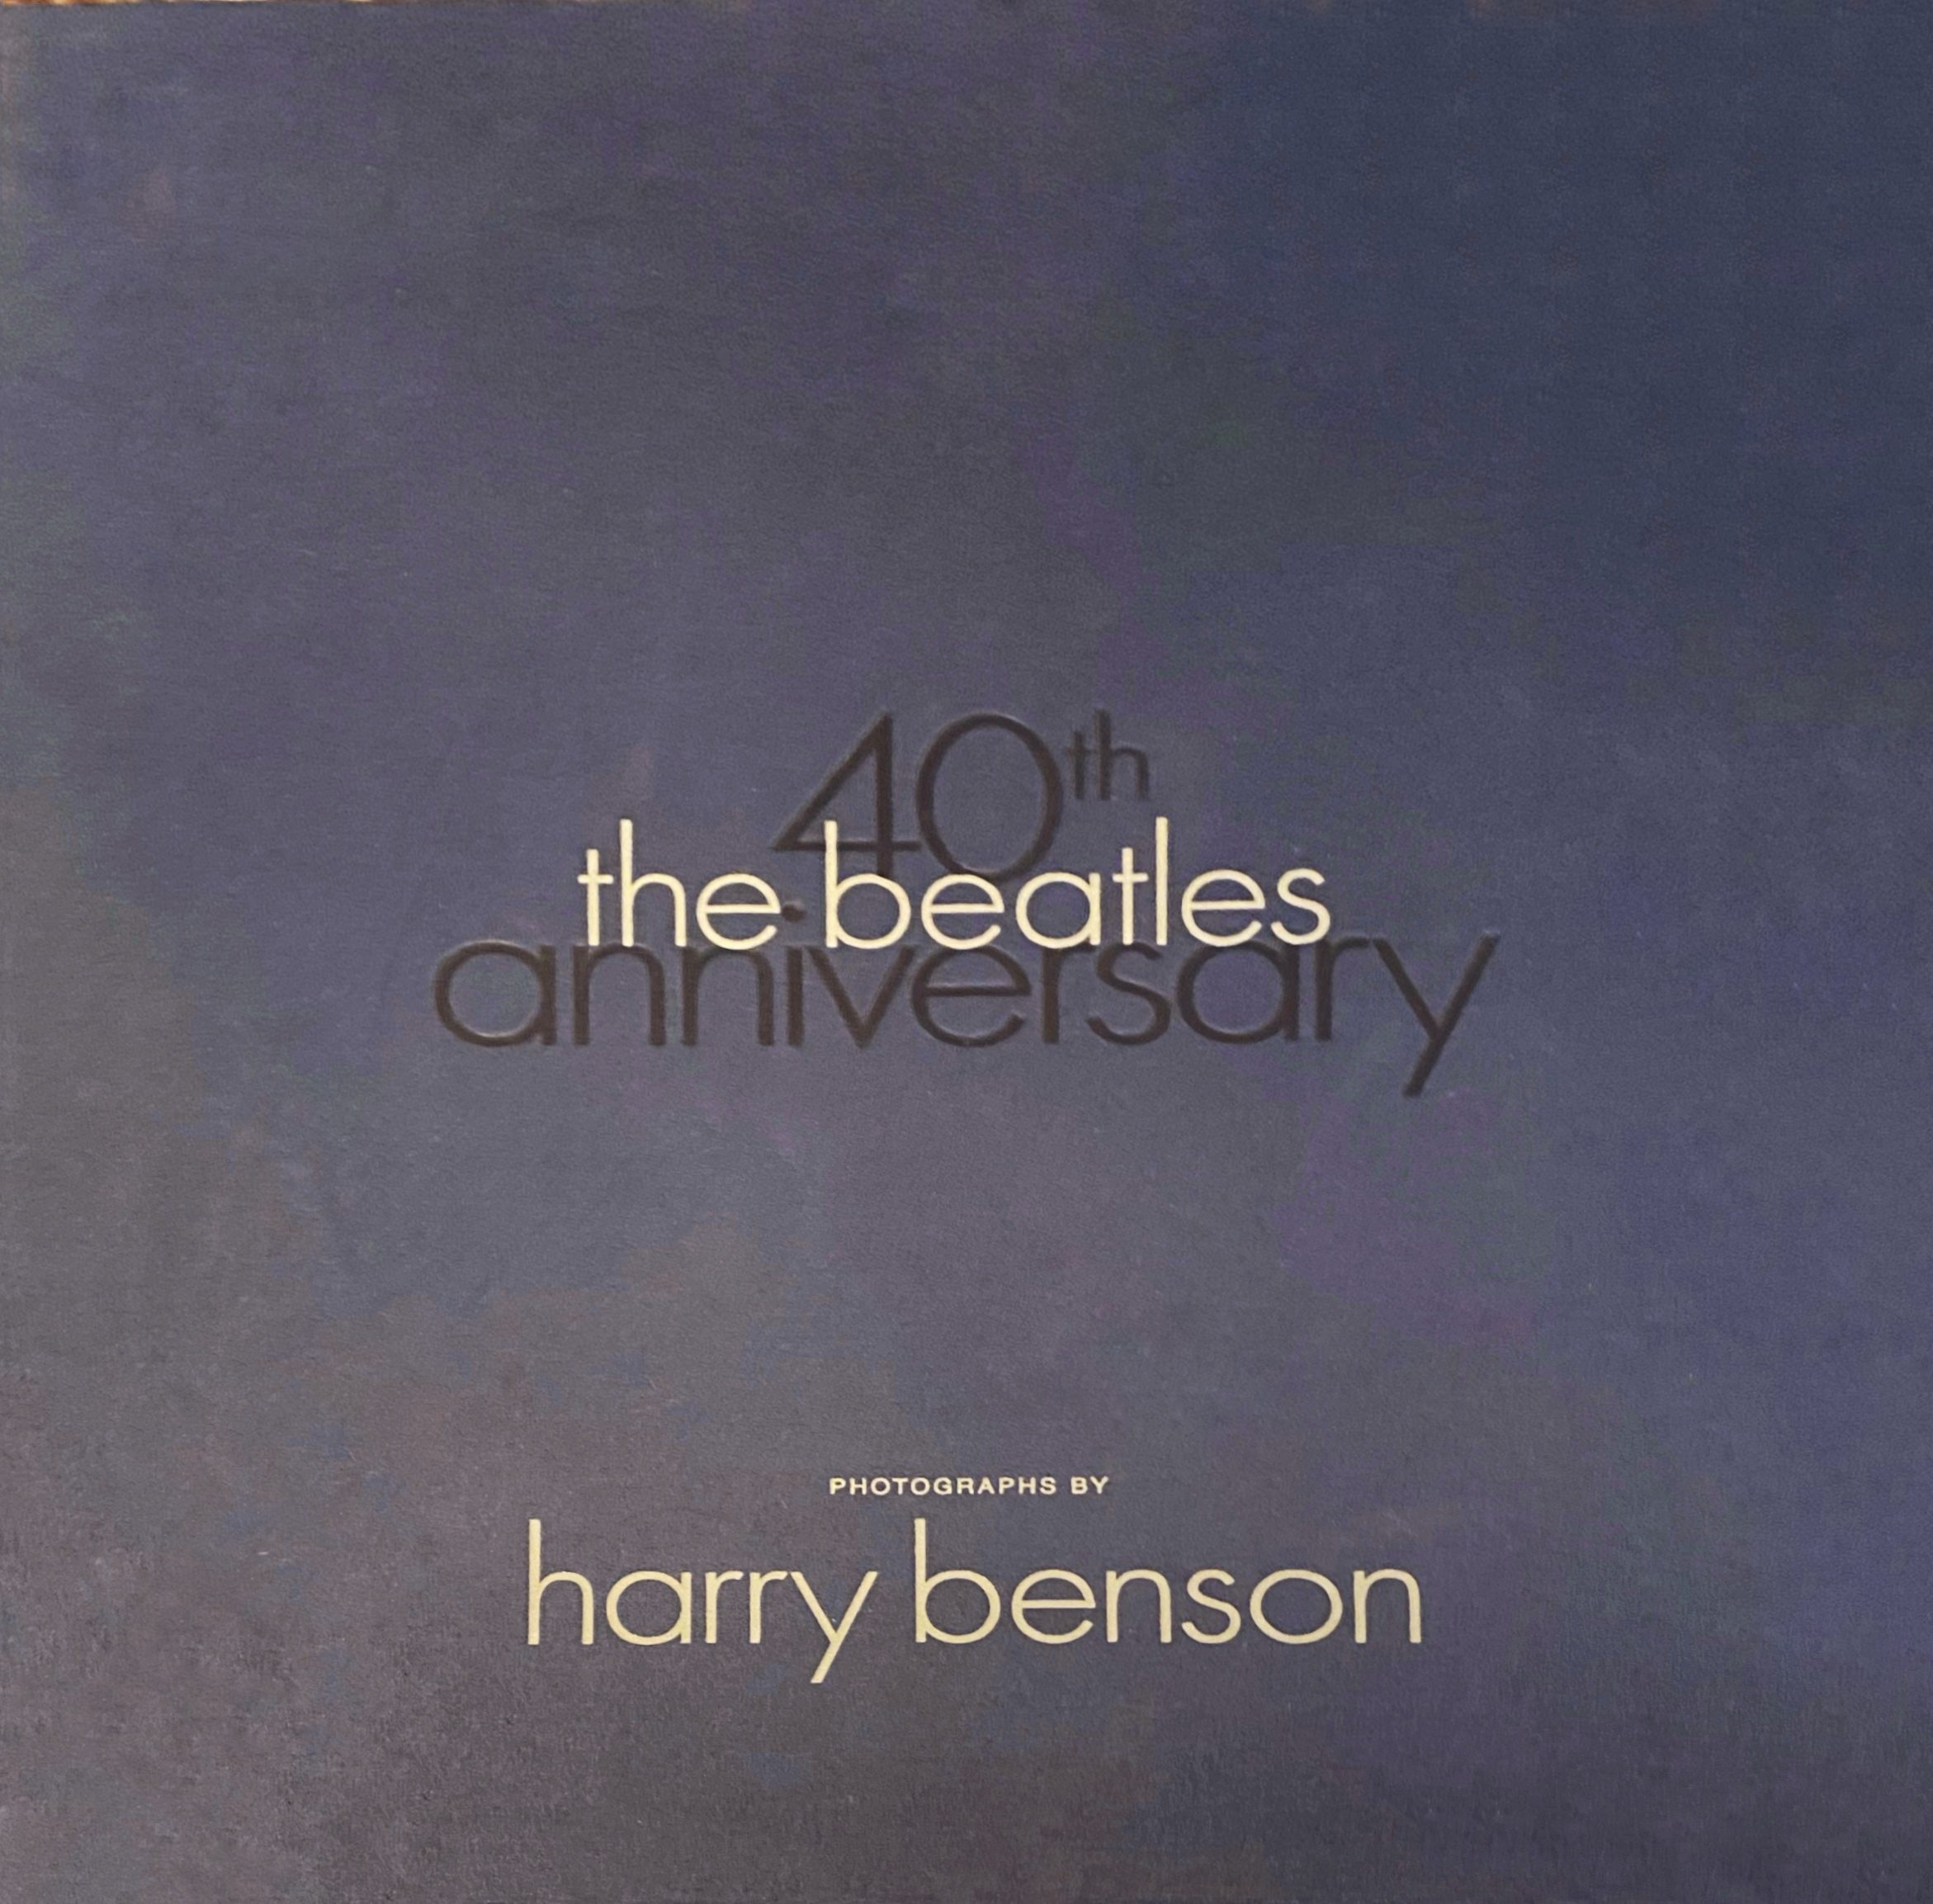 Beatles 40th Anniversary Portfolio